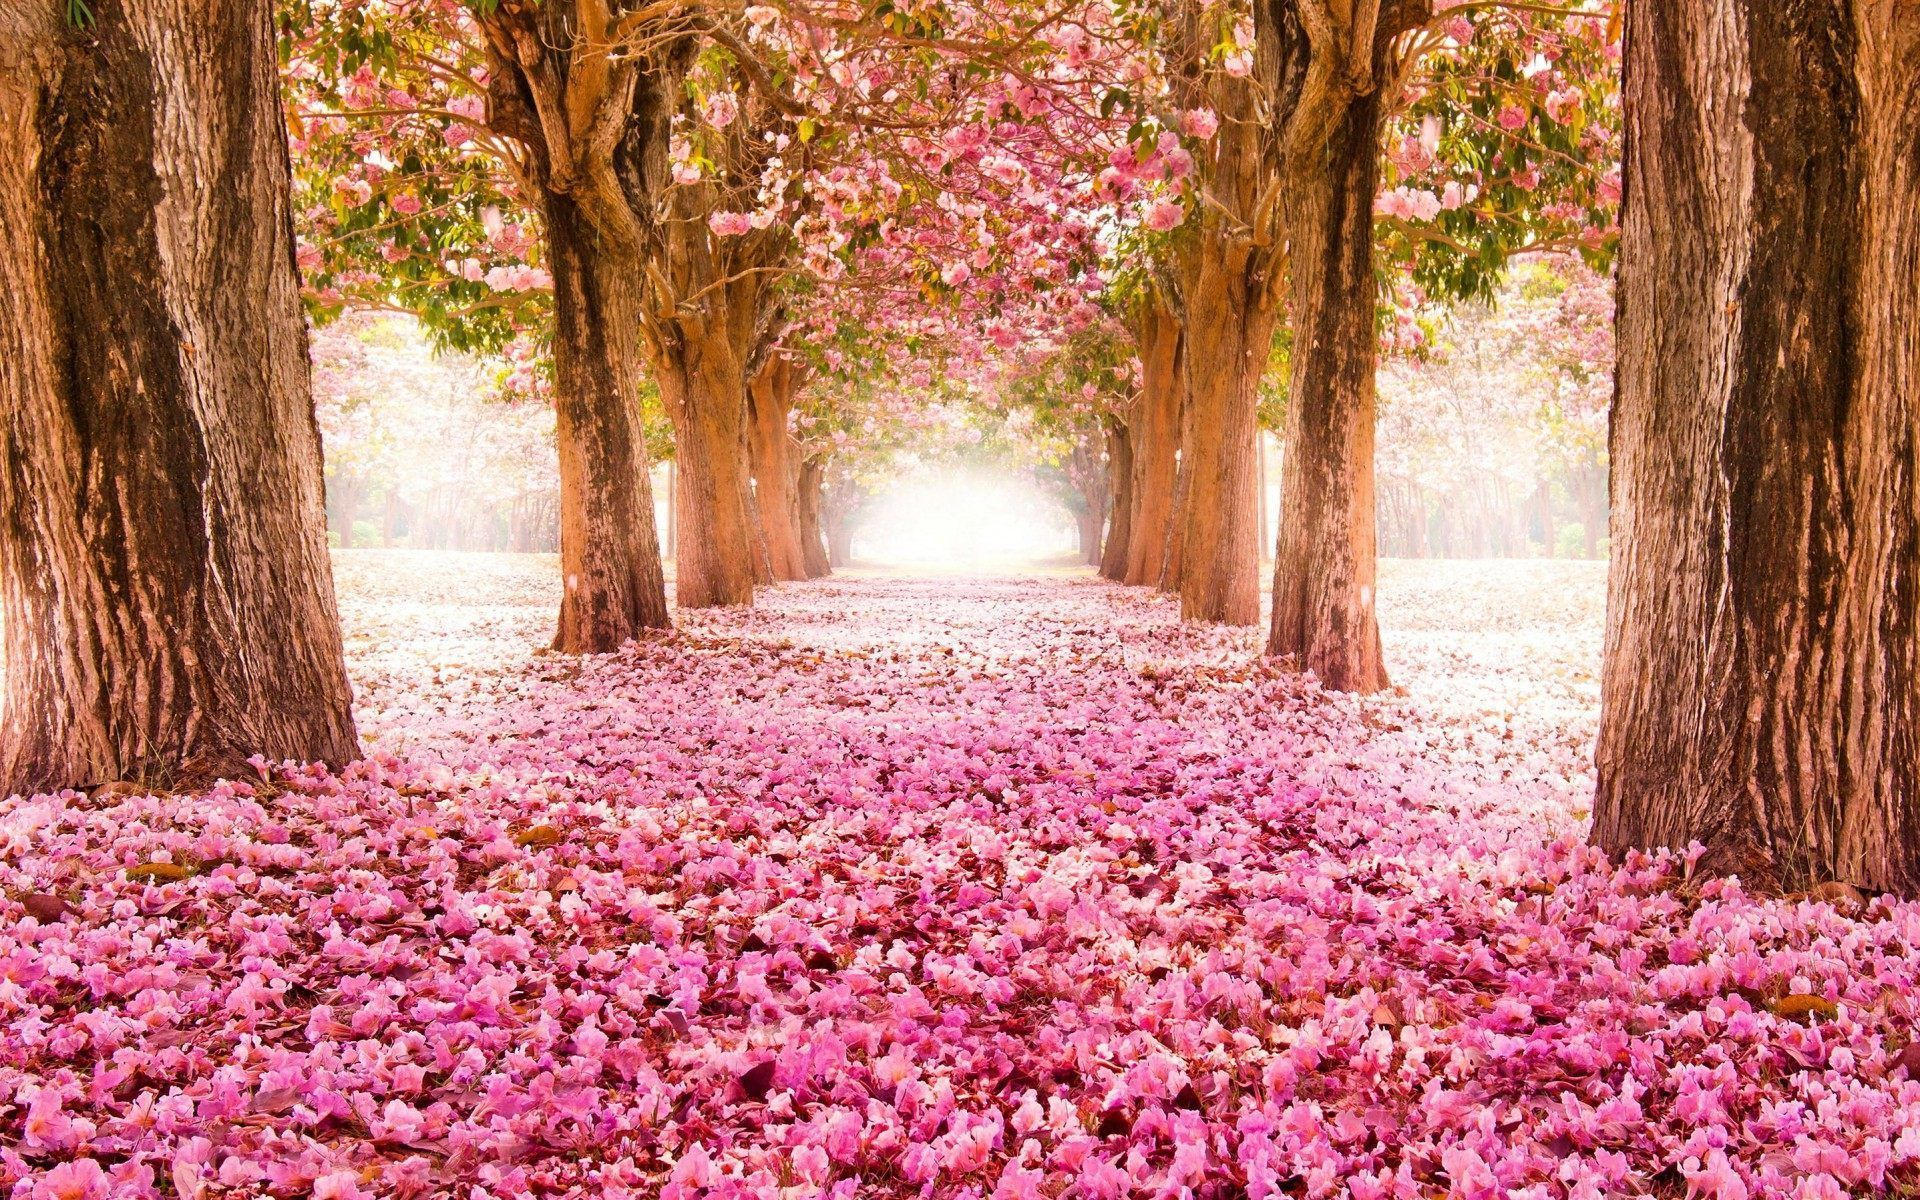 Spring Flowers Wallpapers Hd Wallpapers Backgrounds Images Cherry Blossom Wallpaper Spring Wallpaper Pink Trees